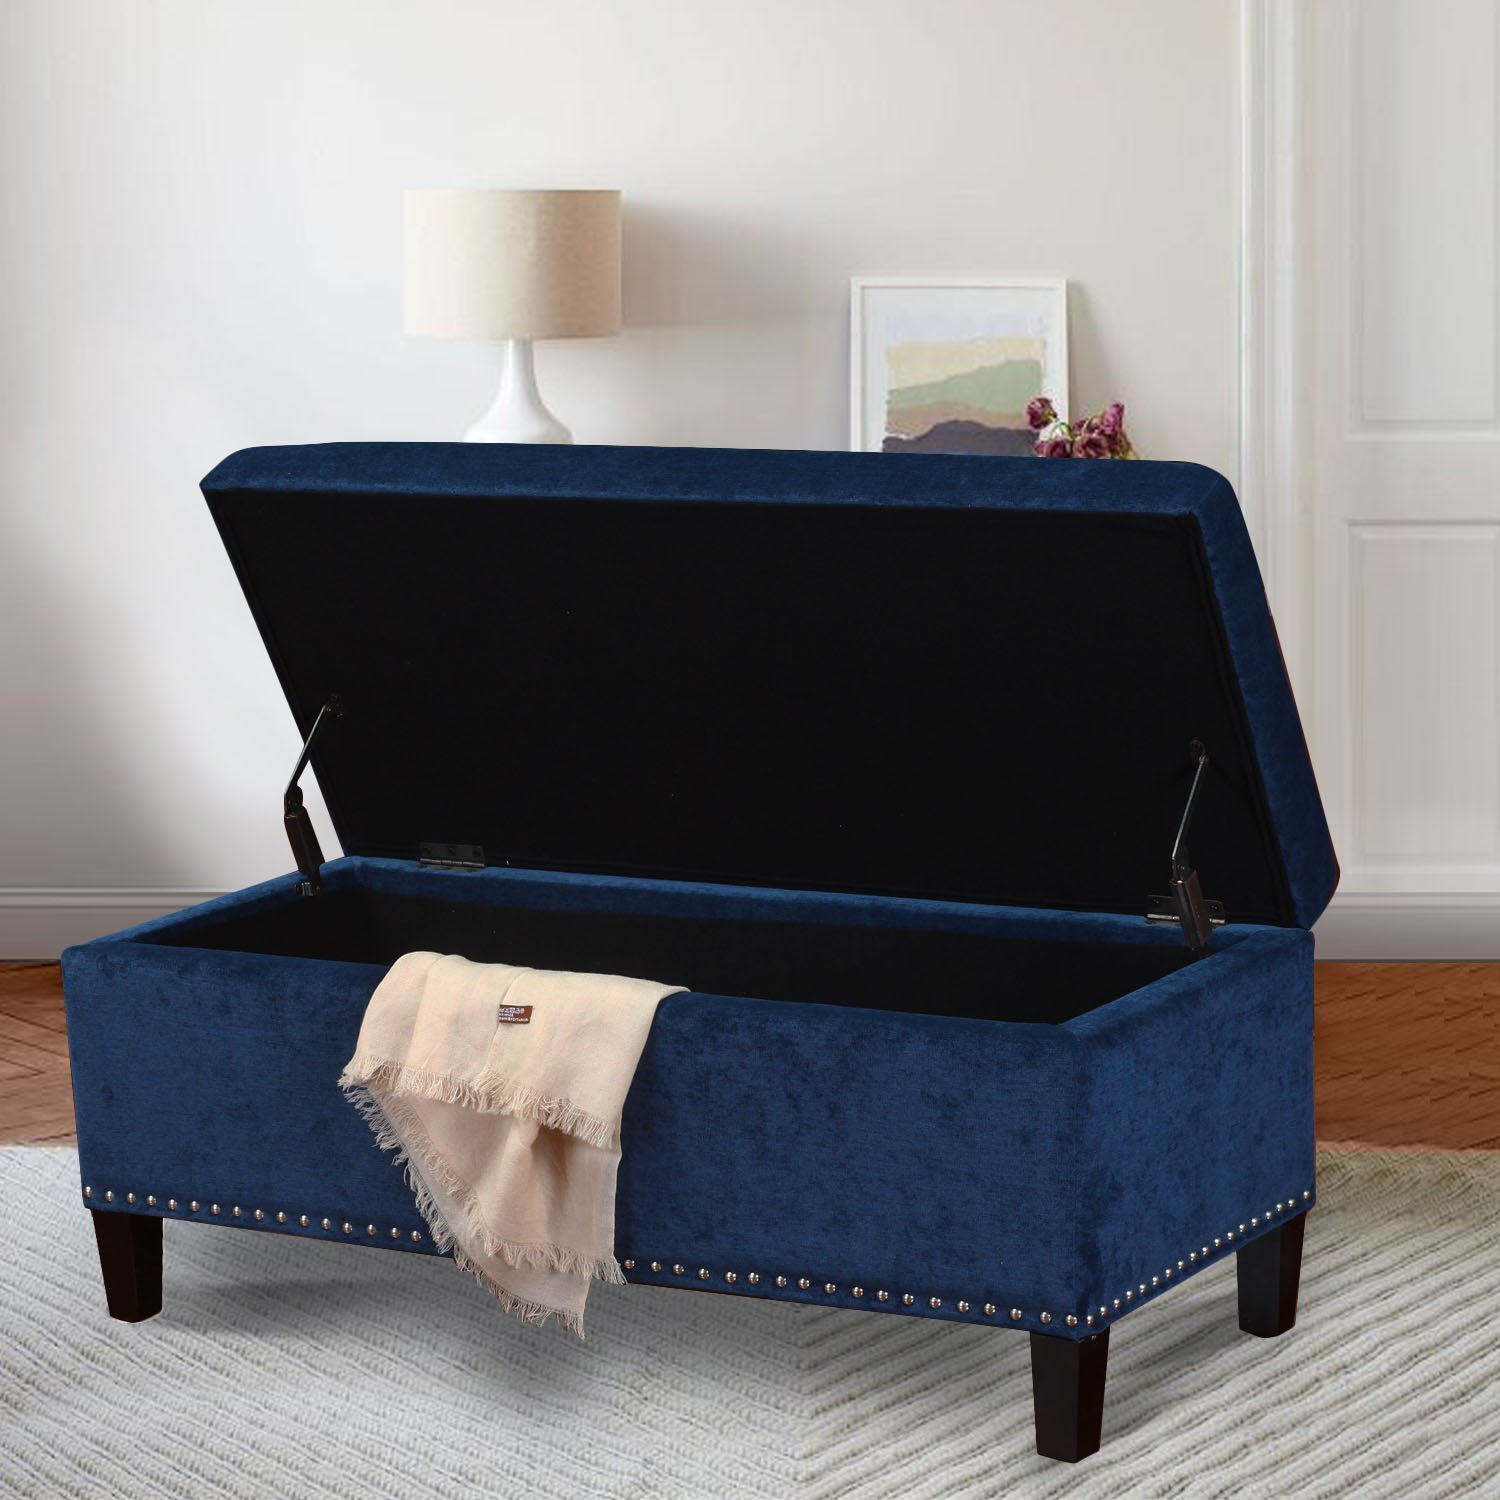 Adeco Royal Blue Microfiber Rectangular Tufted Storage